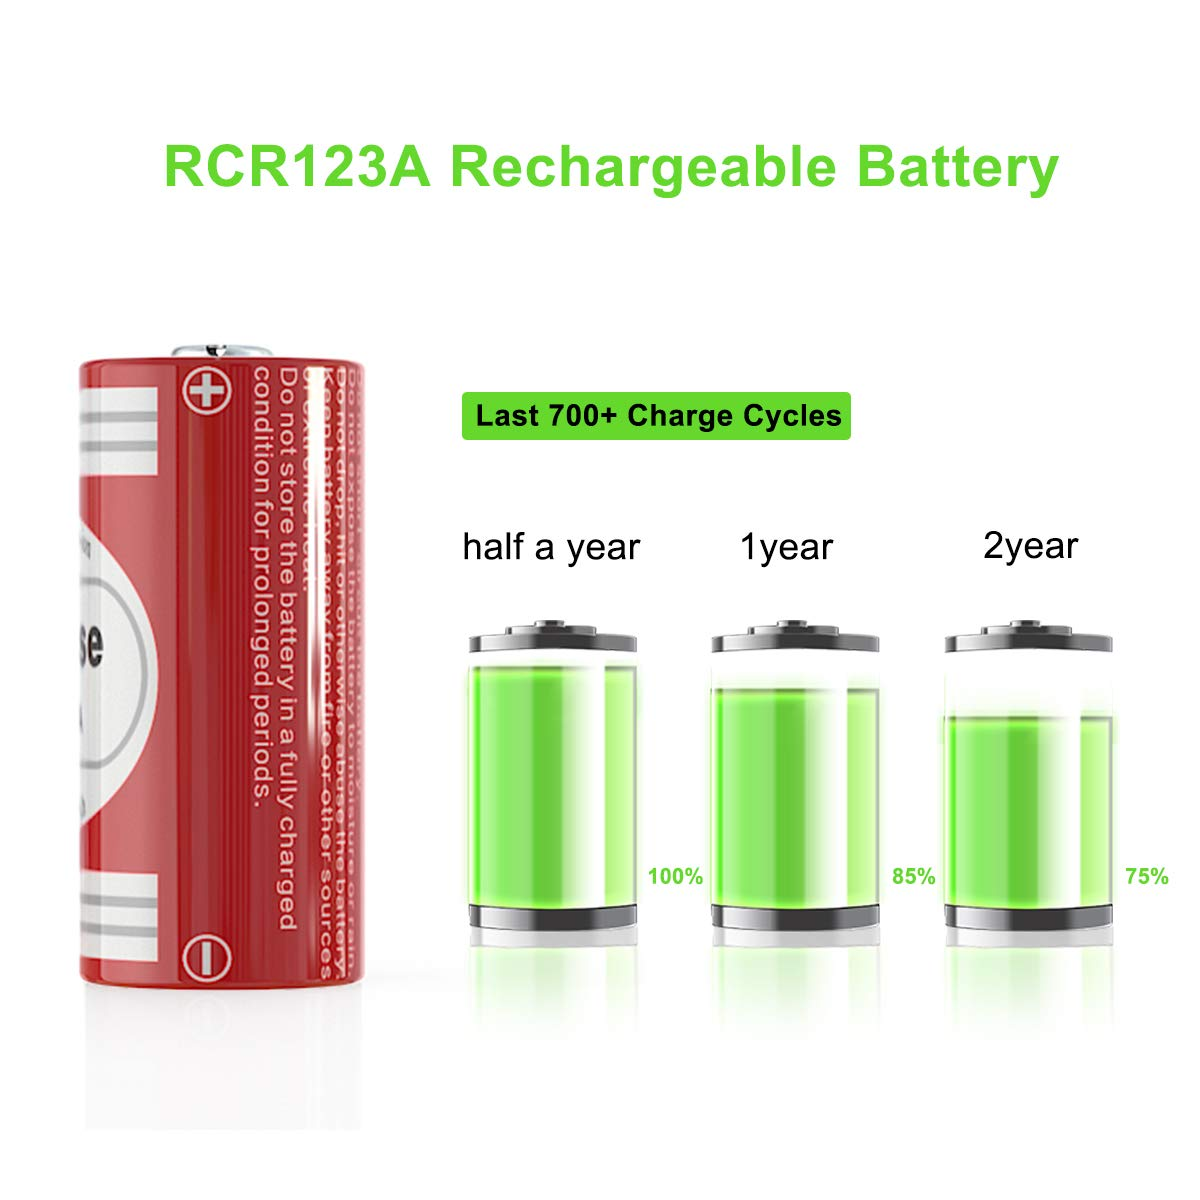 Four Slots LCD Display Charger with 12 Pack 3.7V 700mAh RCR123A Batteries for Arlo Cameras Red Elebase CR123A Rechargeable Batteries and Charger Combo Pack VMC3030//VMK3200//VMS3330//3430//3530